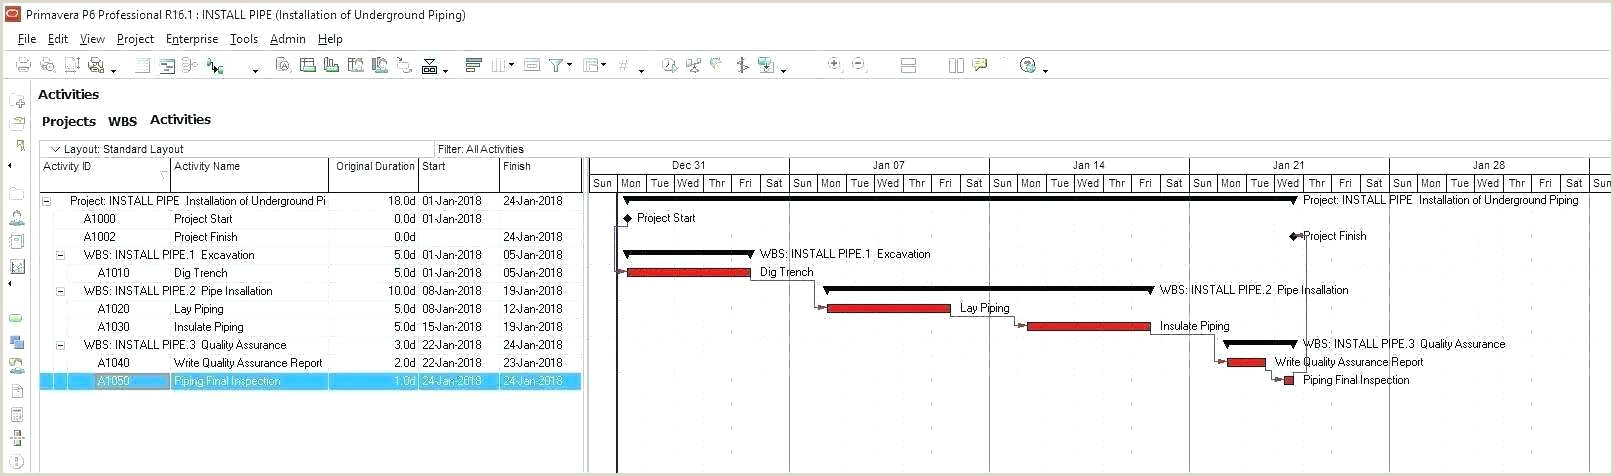 Google Docs Meeting Minutes Template New Daily Shift Report format Production Template Doc